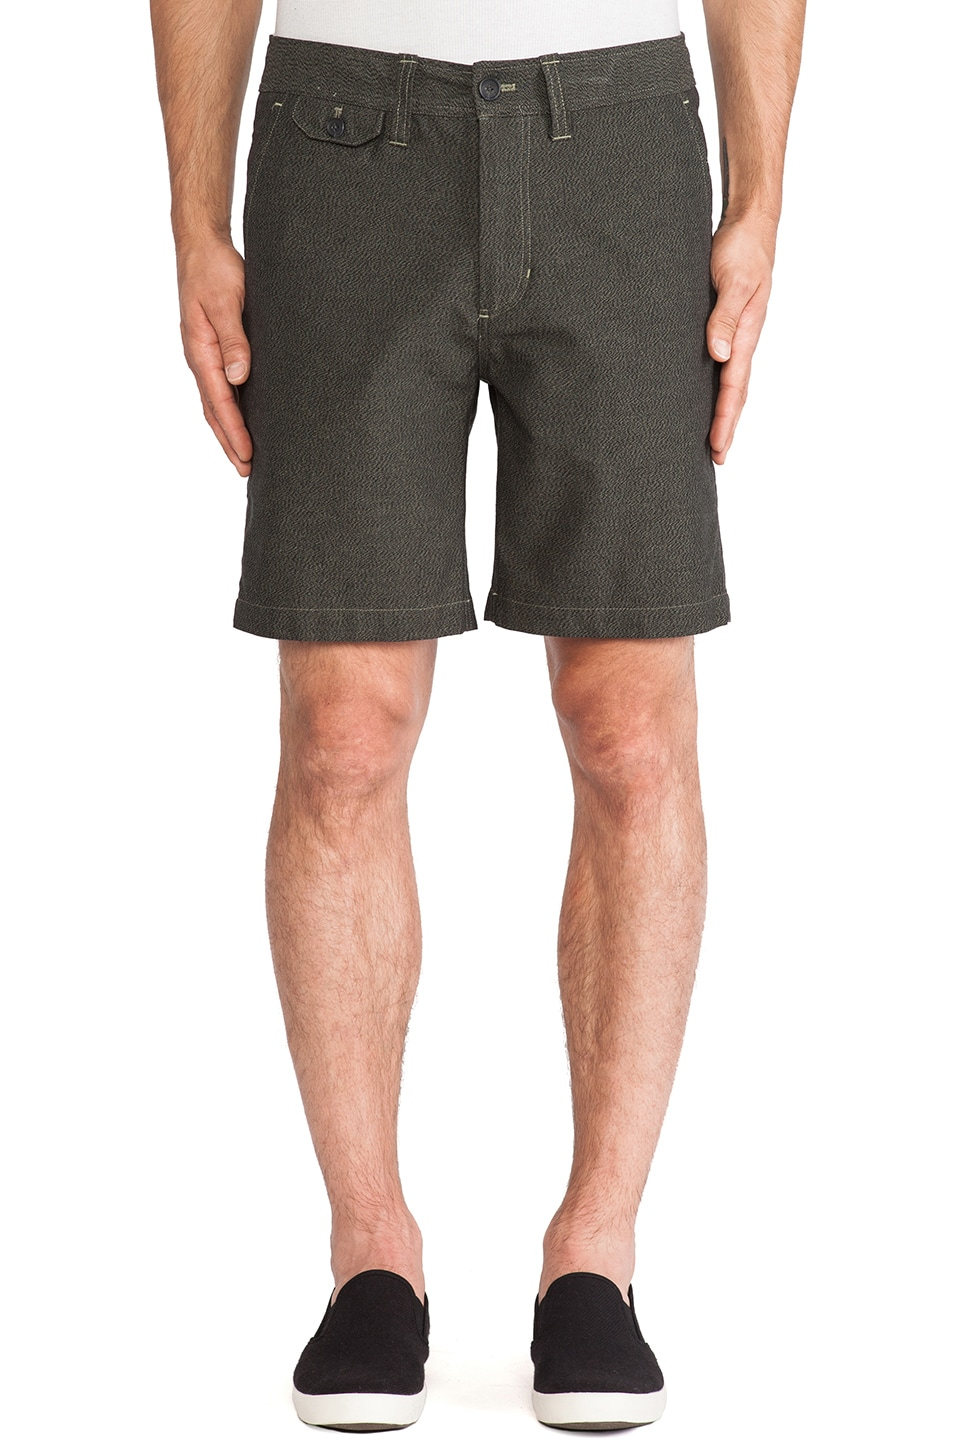 SATURDAYS NYC Bellows Twill Short in Olive Drab